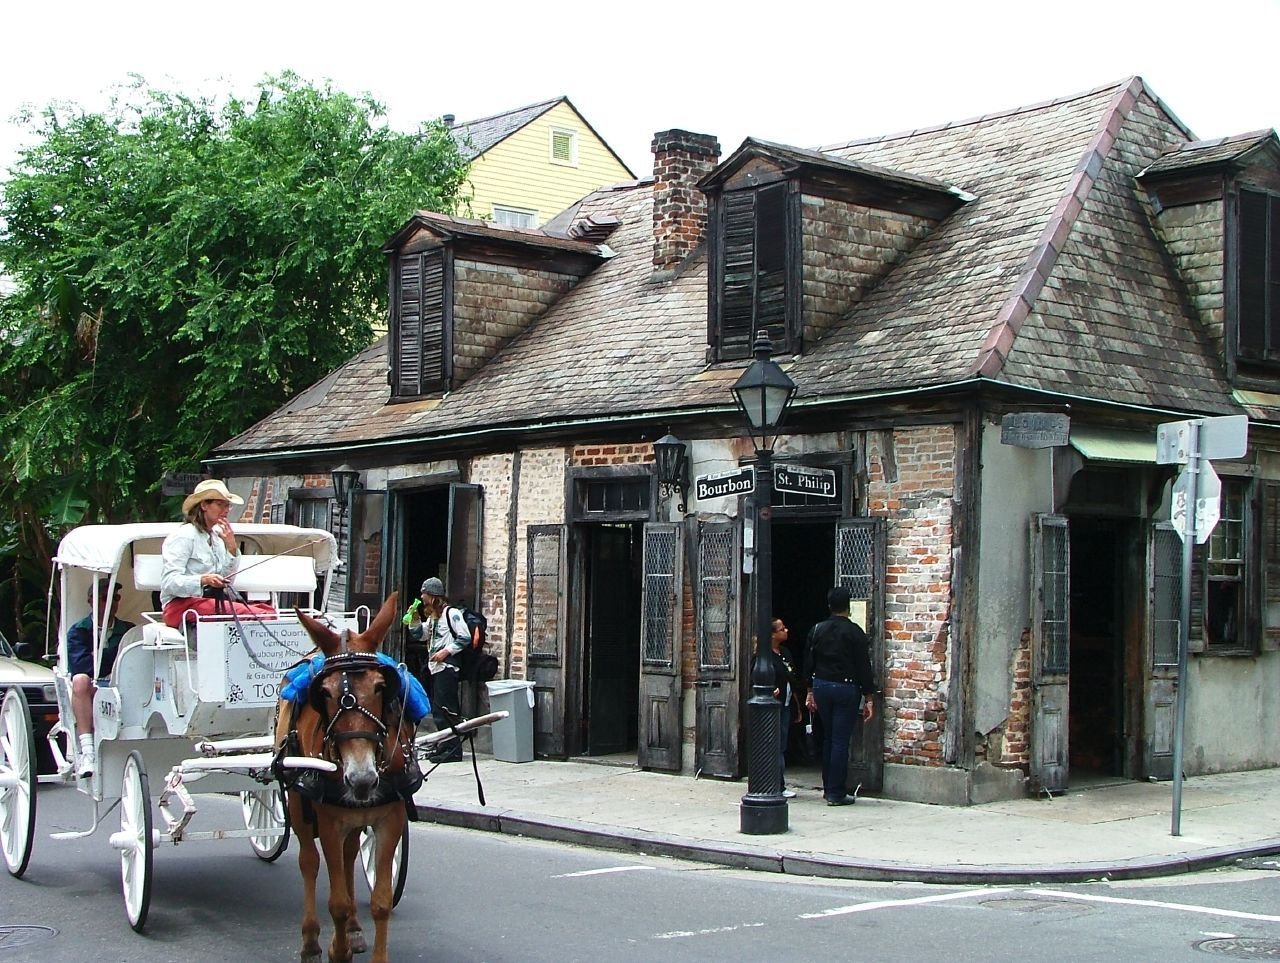 Lafitte's Blacksmith Shop is reportedly the oldest bar building in the U.S.